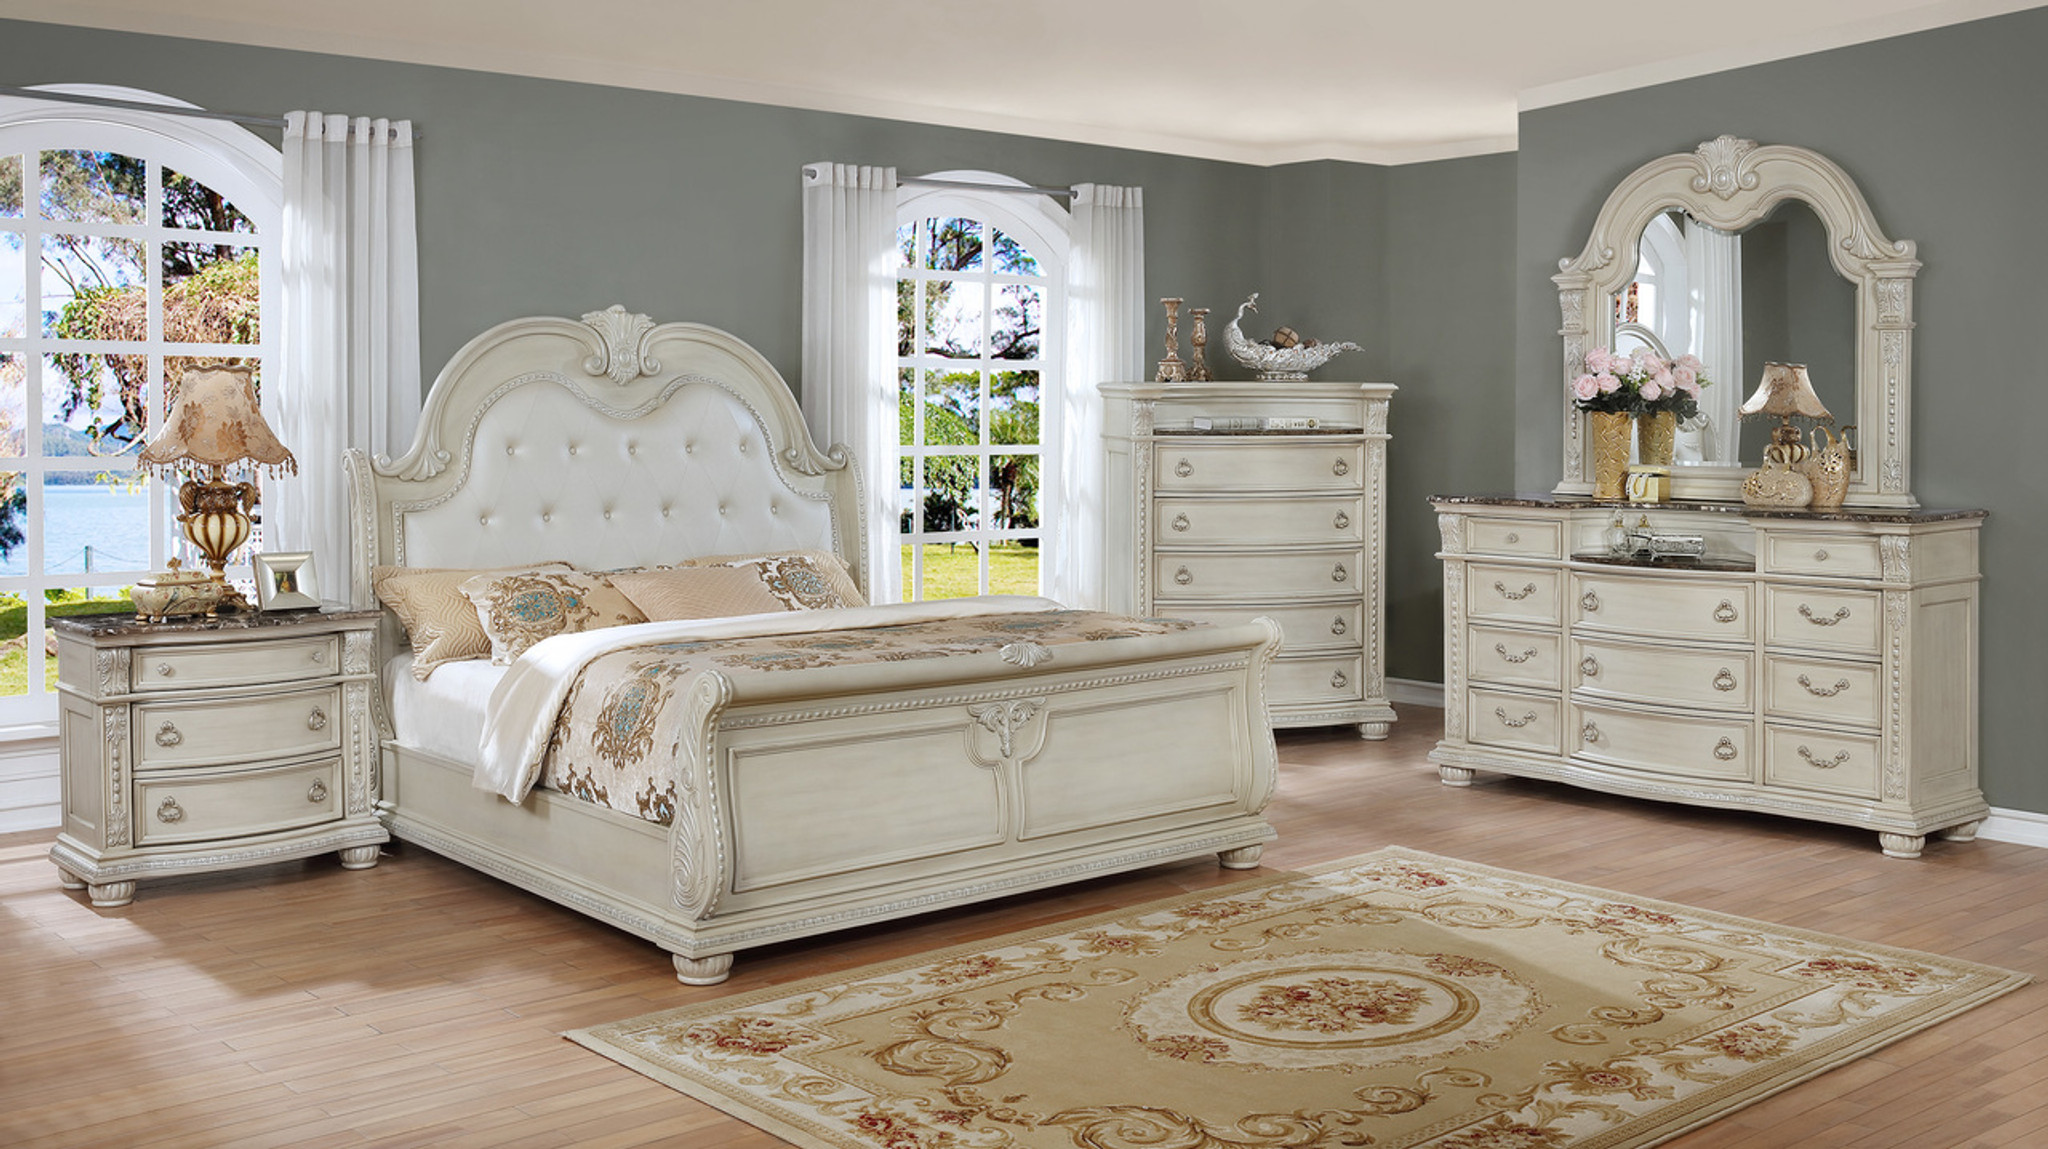 B1630 Stanley Sleigh Bedroom Set Collection By Crown Mark